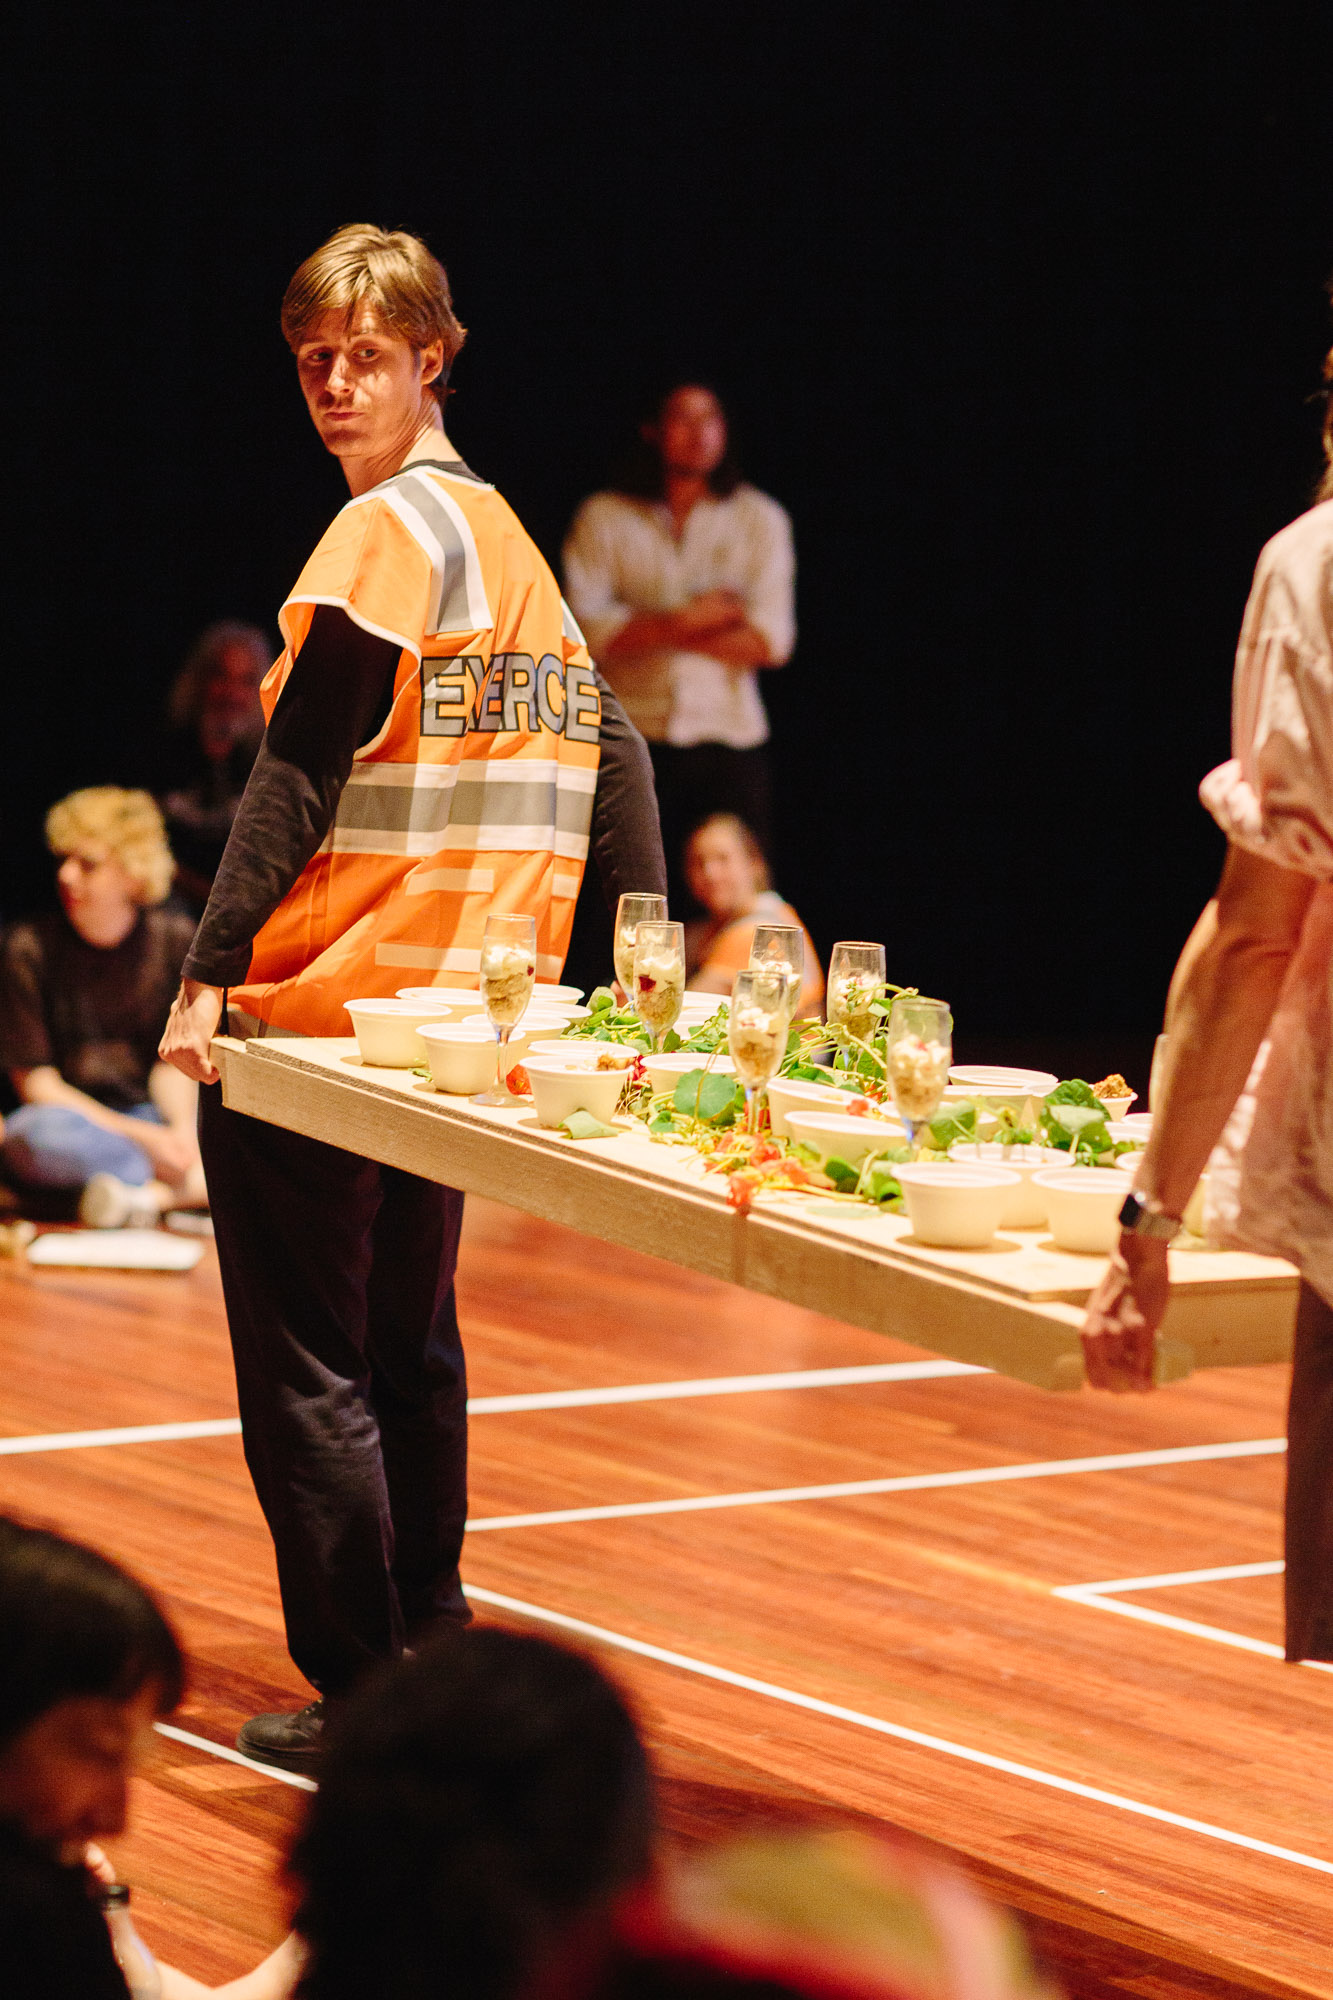 lowres_dinner on stretchers-88.jpg